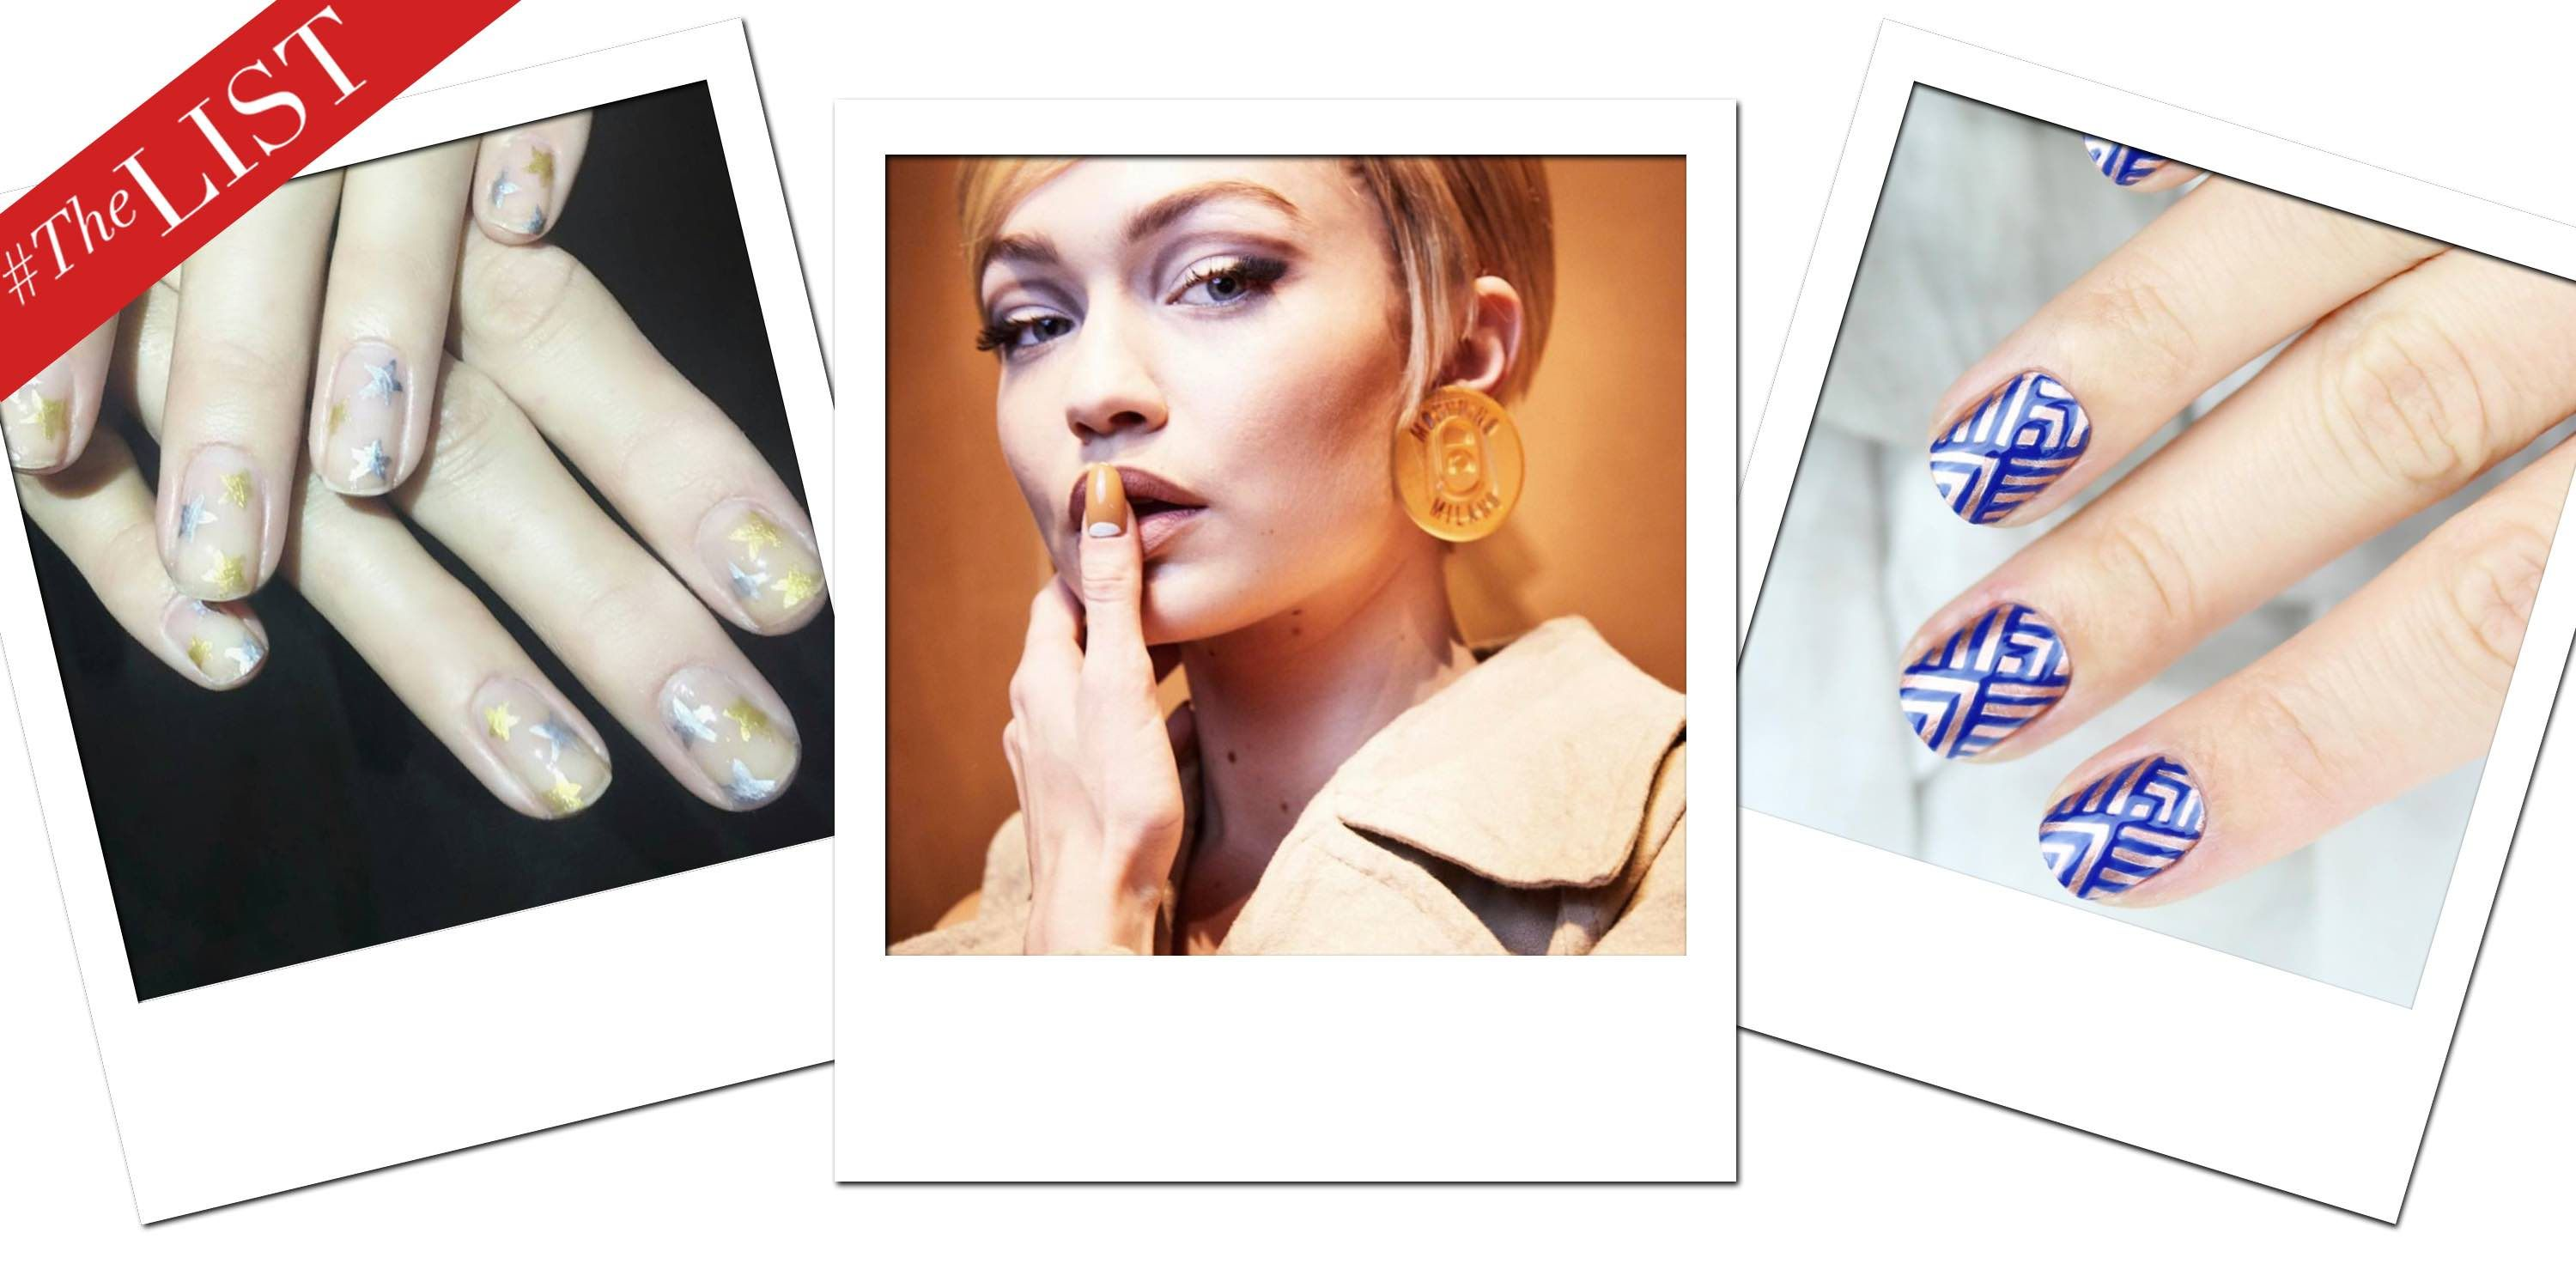 Best Nail Artists on Instagram - Manicurists To Follow on Instagram